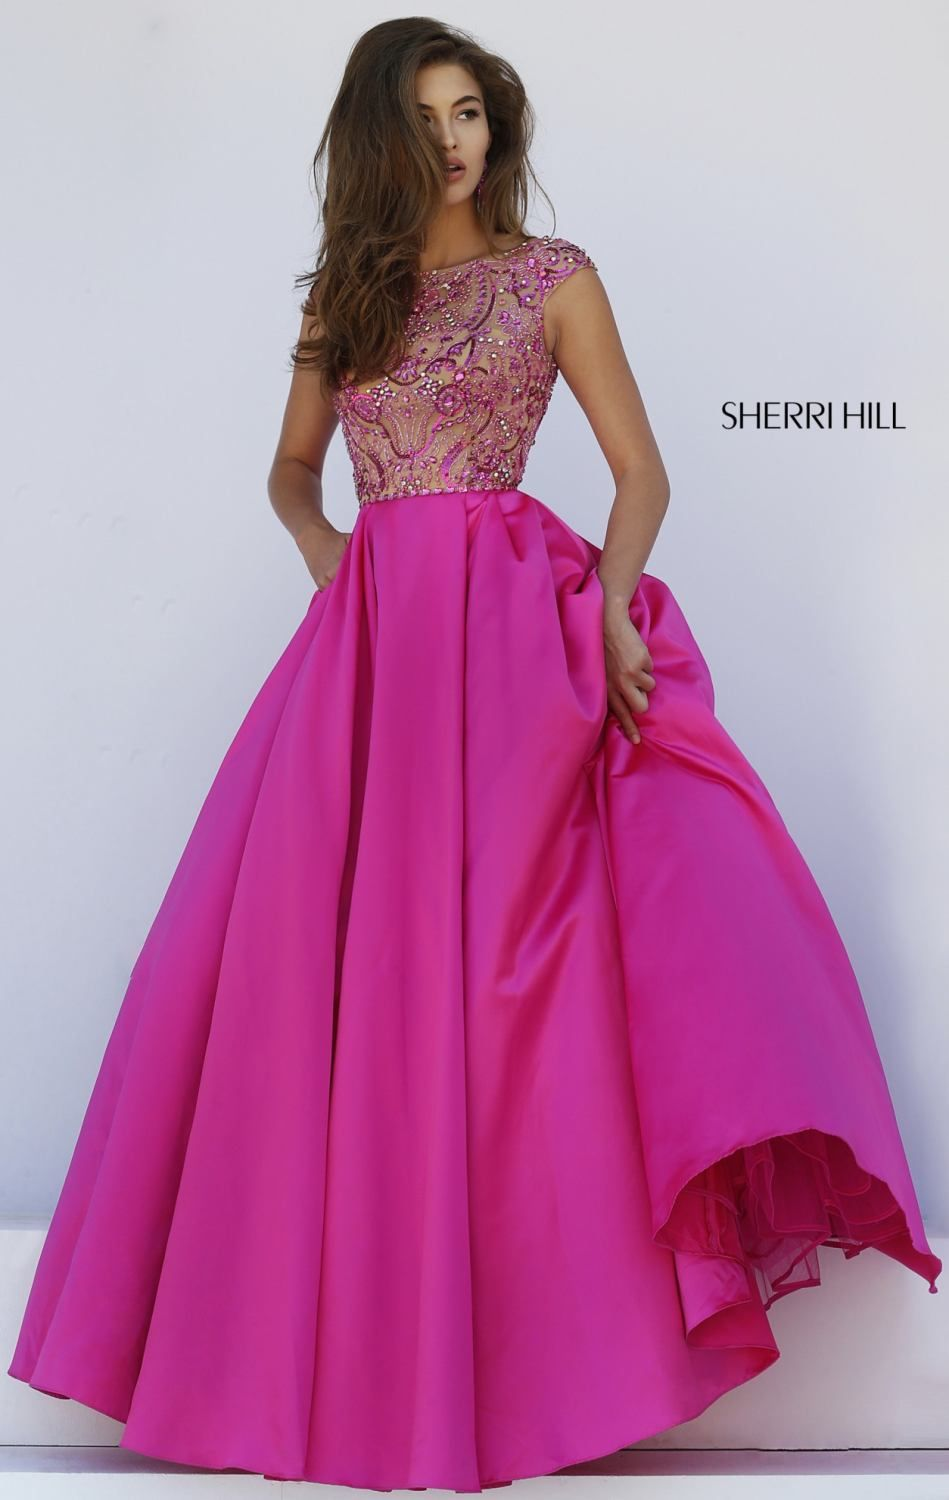 Sherri Hill 32359 - Thumbnail 11 | I love Dresses | Pinterest ...